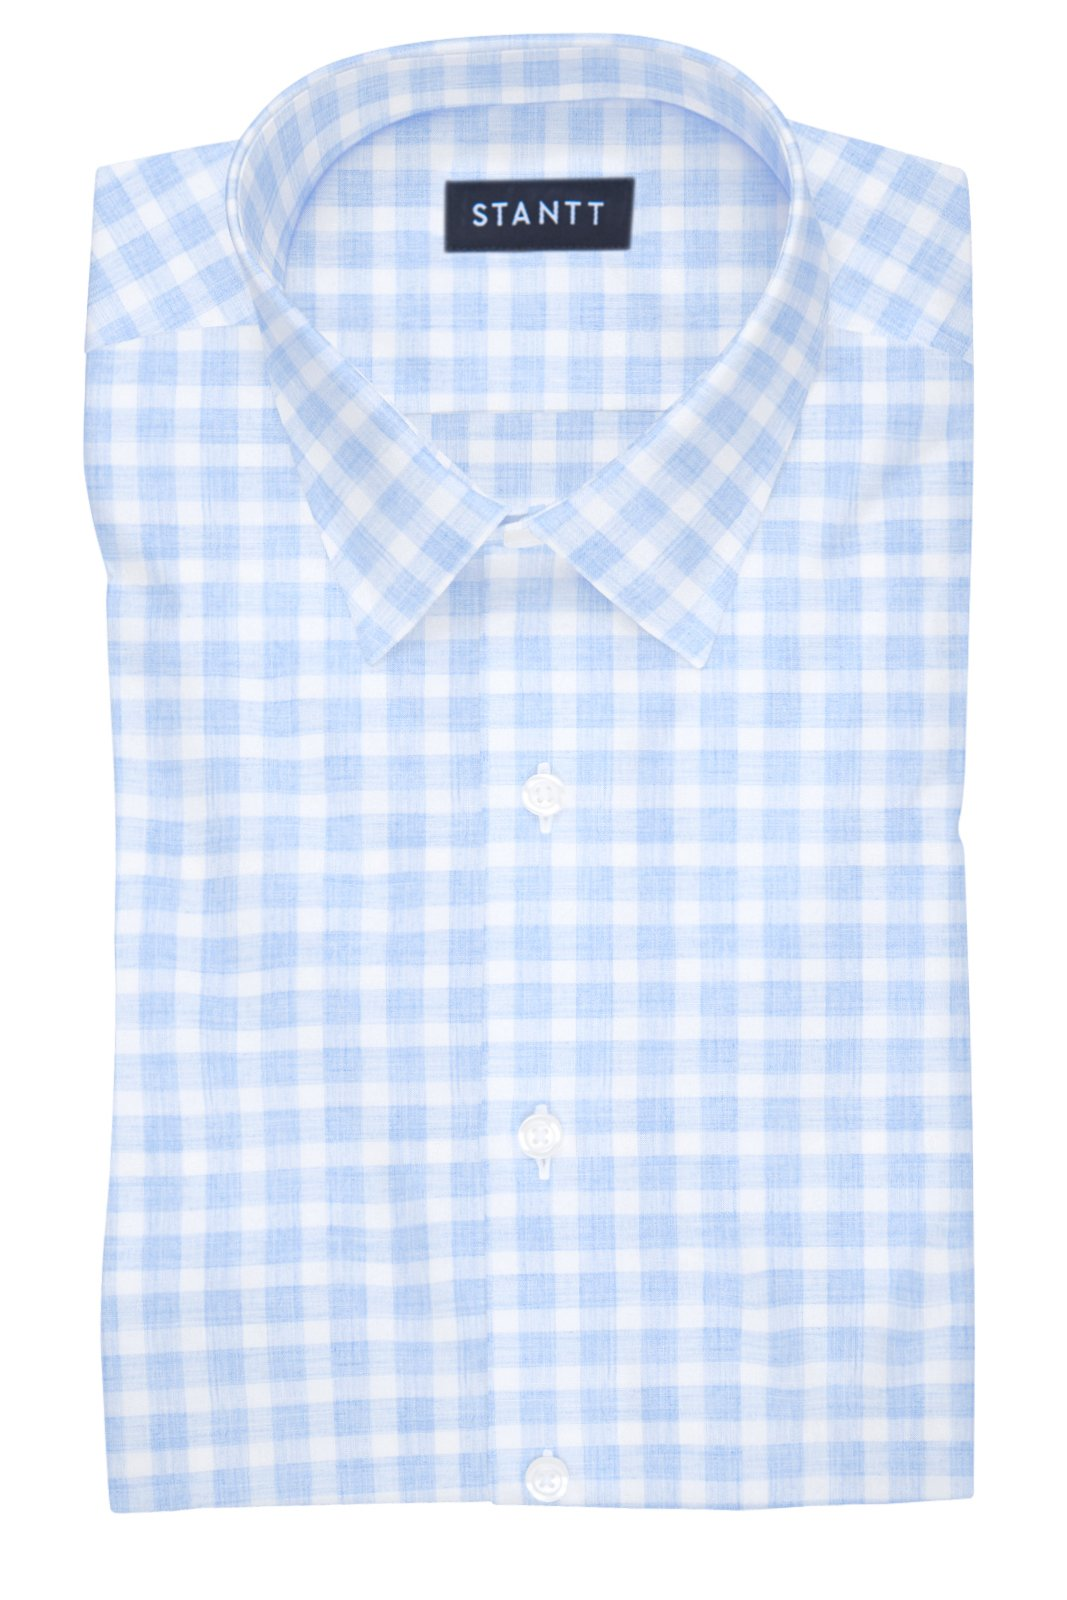 Heathered Blue Check: Semi-Spread Collar, Barrel Cuff